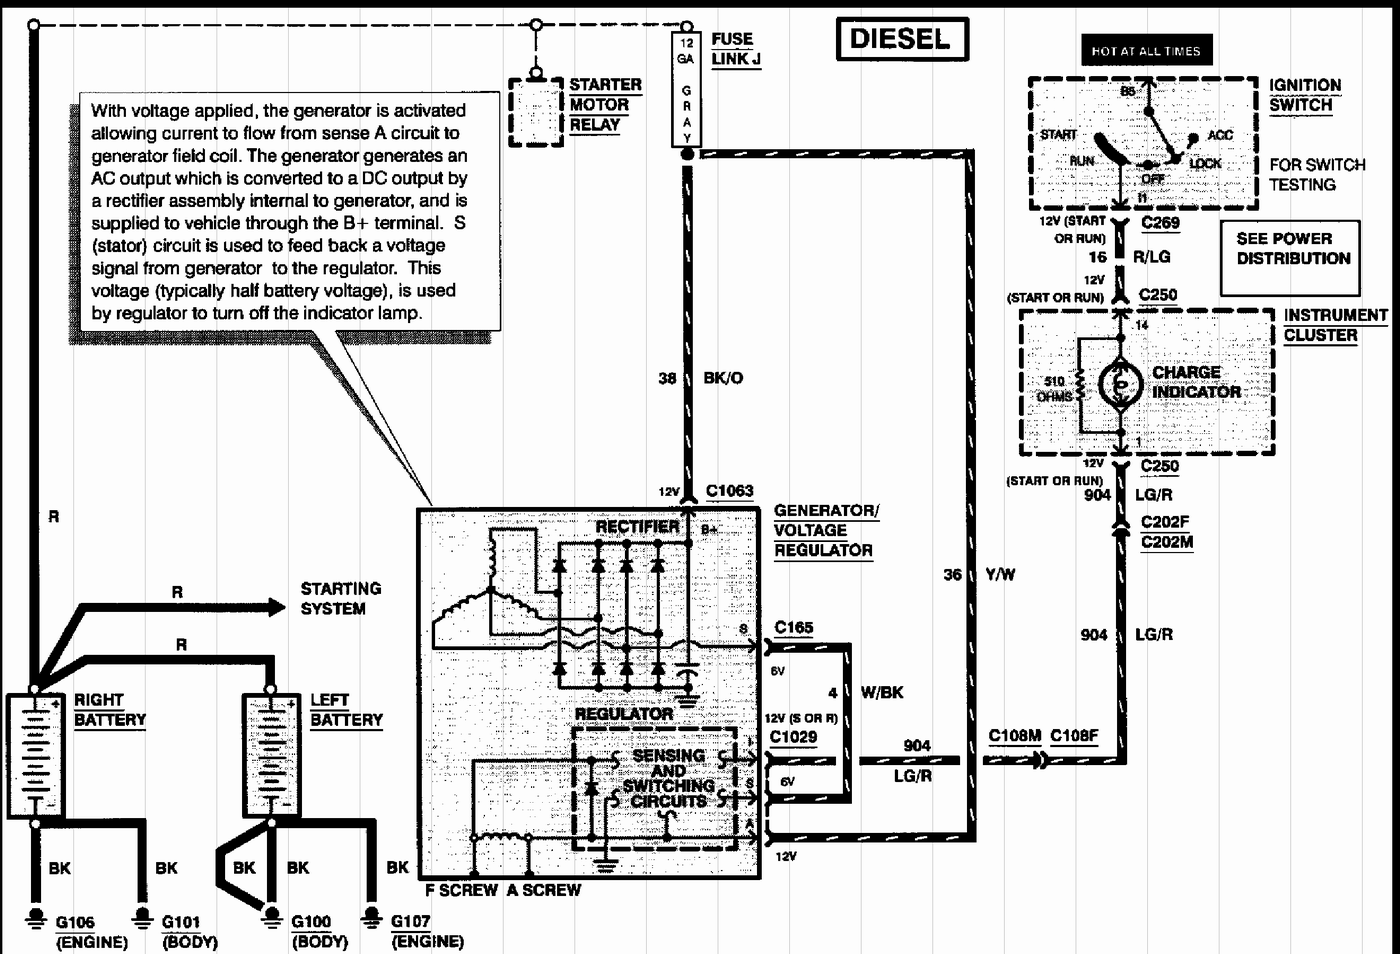 1997 Ford F250 Diesel Wiring Diagram List Of Schematic Circuit 7 3 Powerstroke I Need A For 97 F350 With Rh Pinterest Com 73